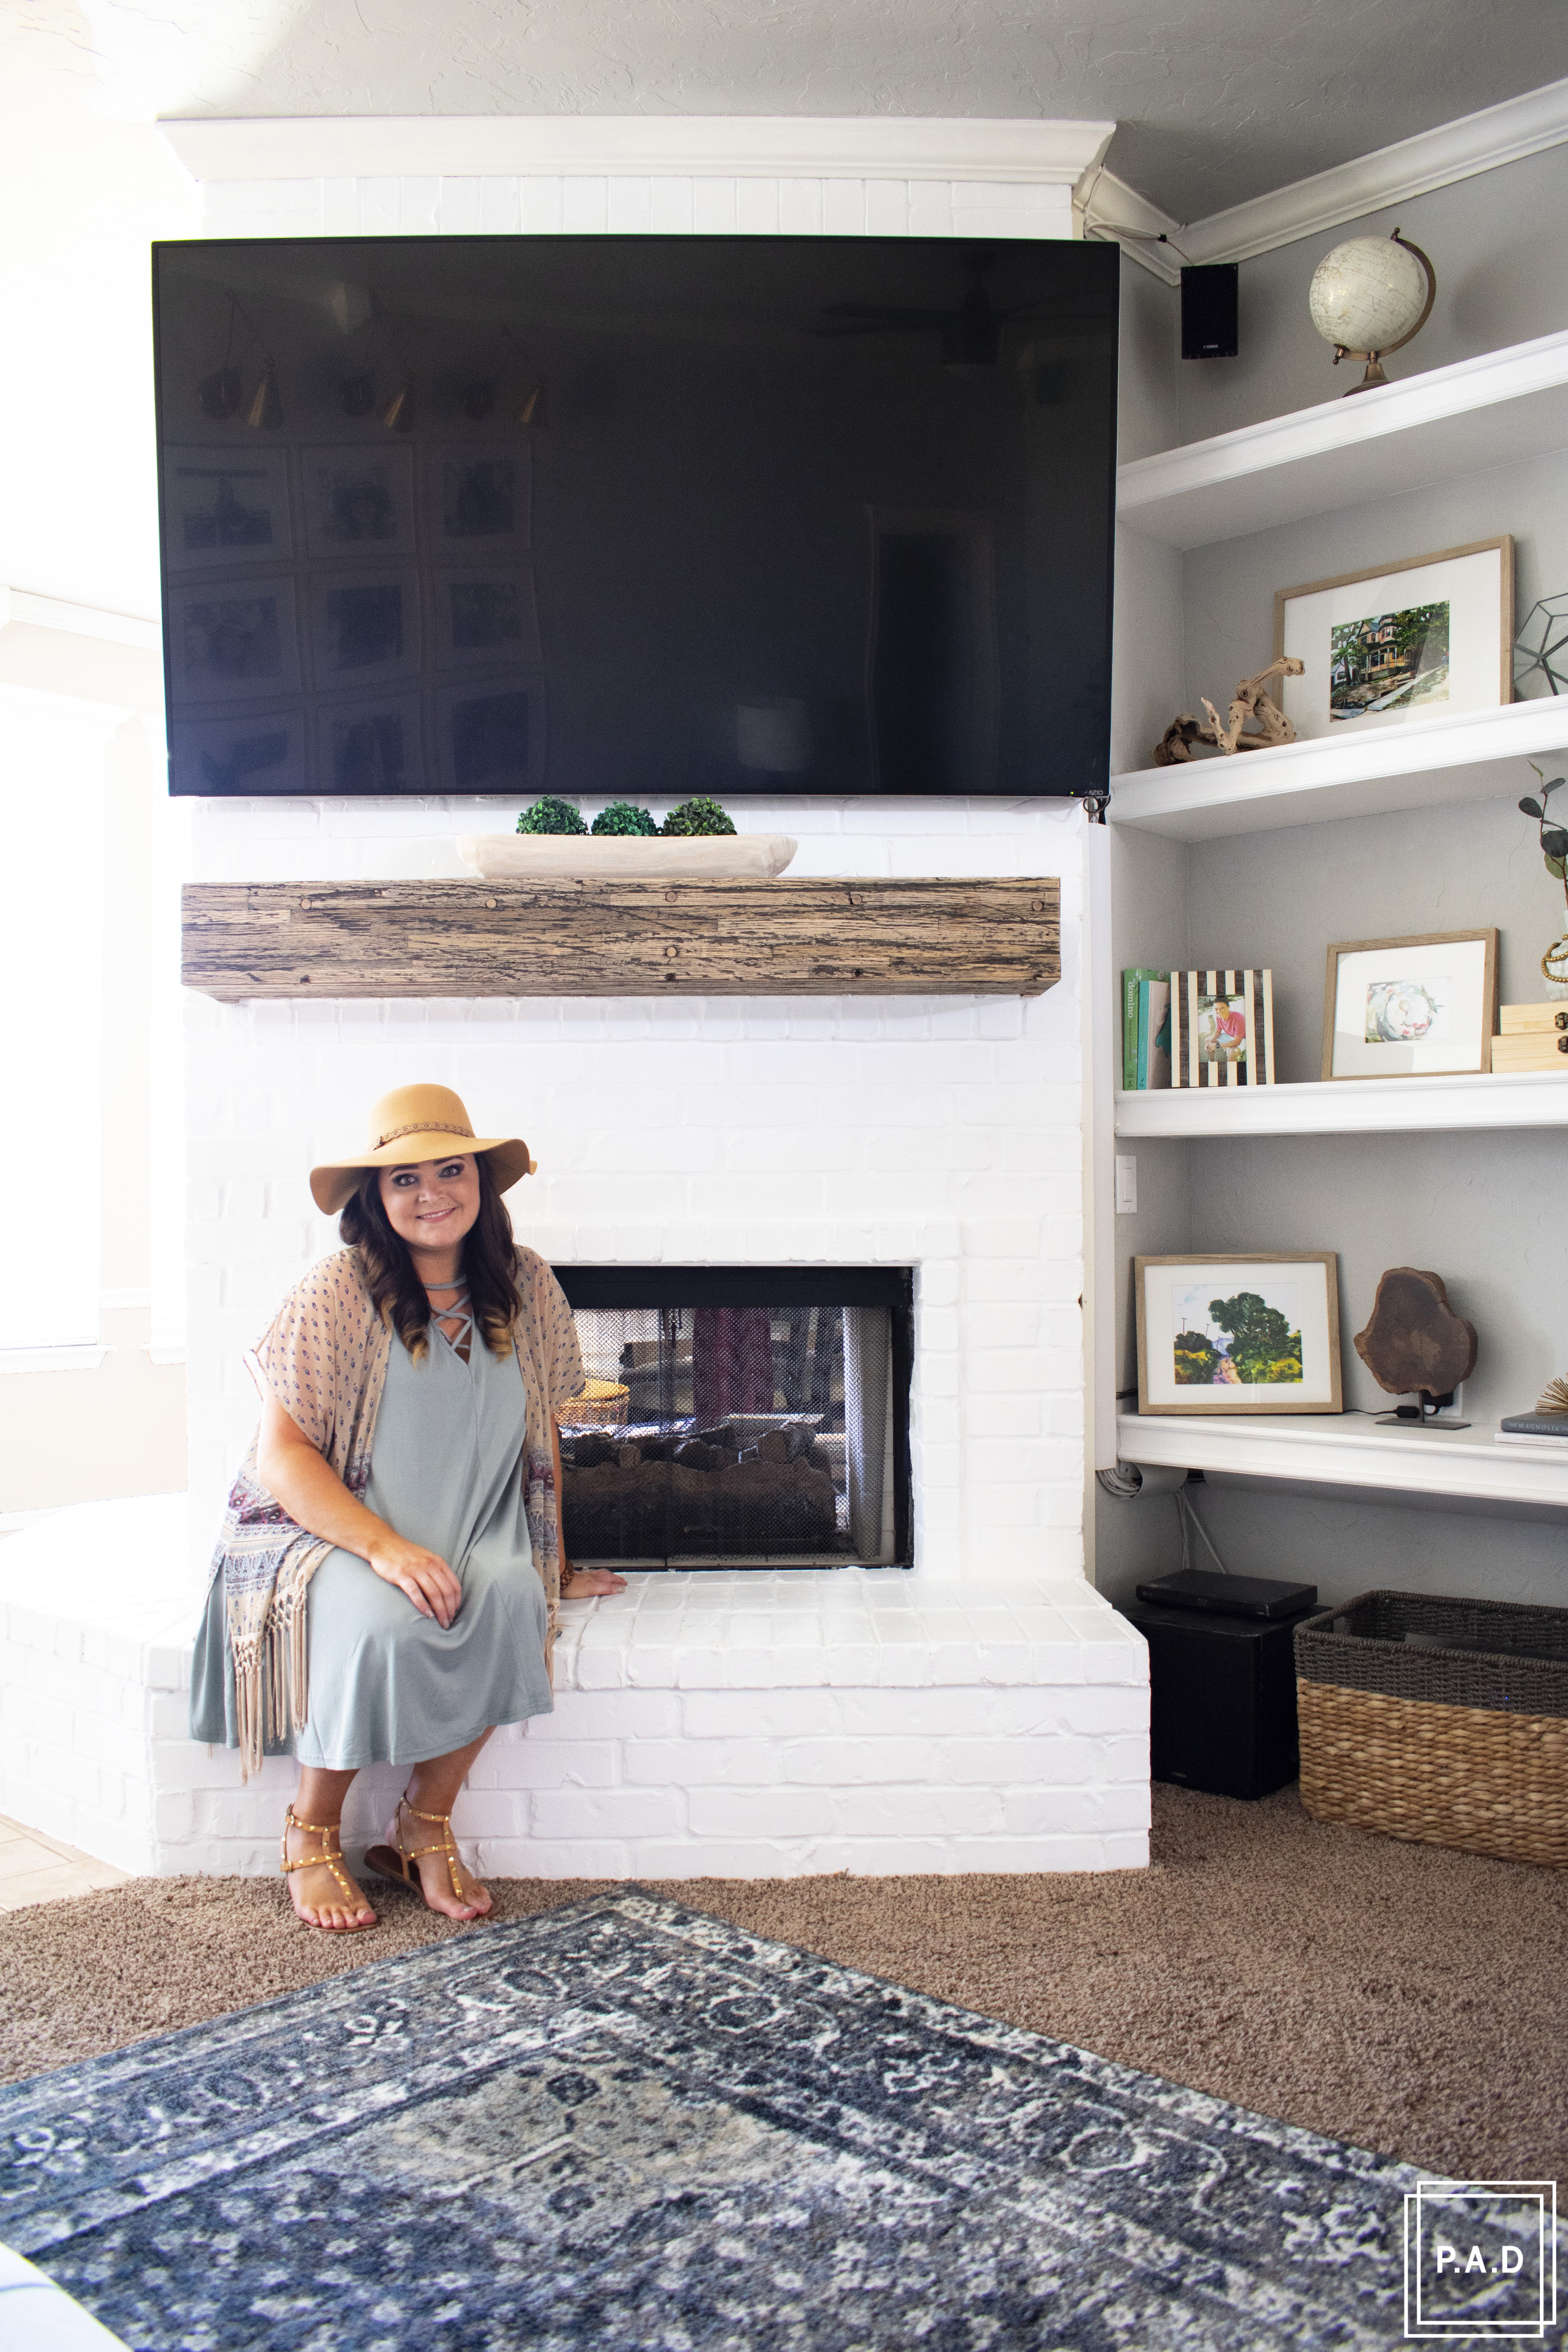 How To Paint A Brick Fireplace • Project Allen Designs